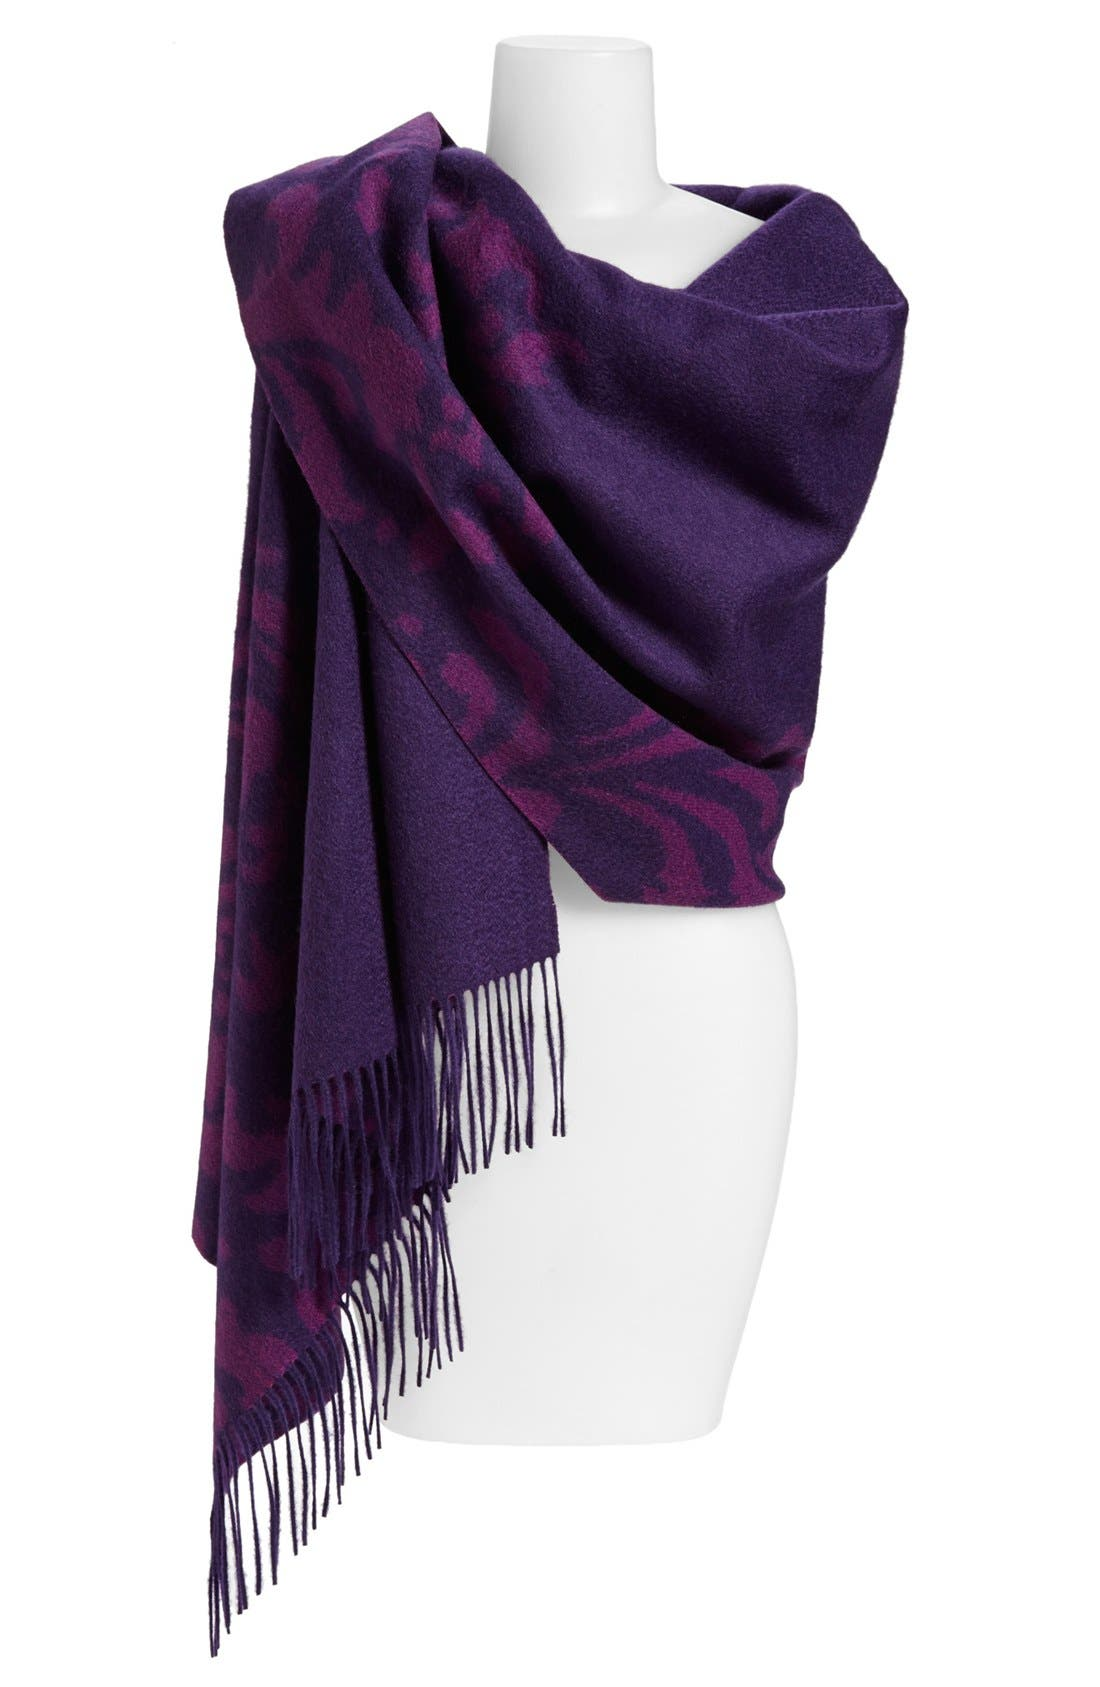 Alternate Image 1 Selected - Nordstrom 'Scroll' Woven Cashmere Wrap